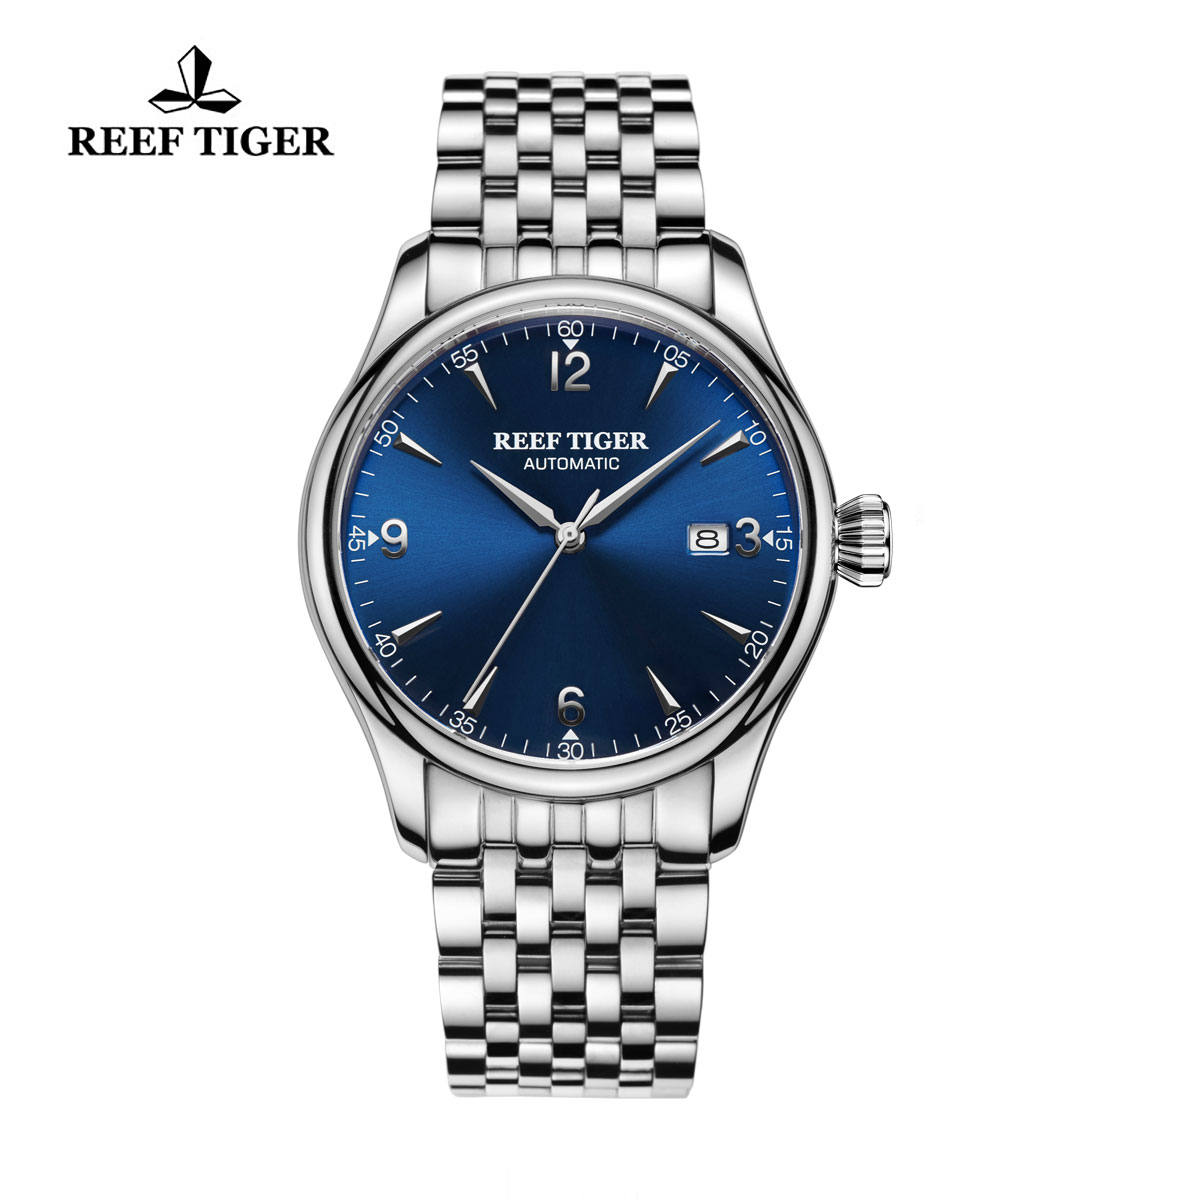 Reef Tiger Heritage Dress Automatic Watch Blue Dial Stainless Steel Case RGA823G-YLY